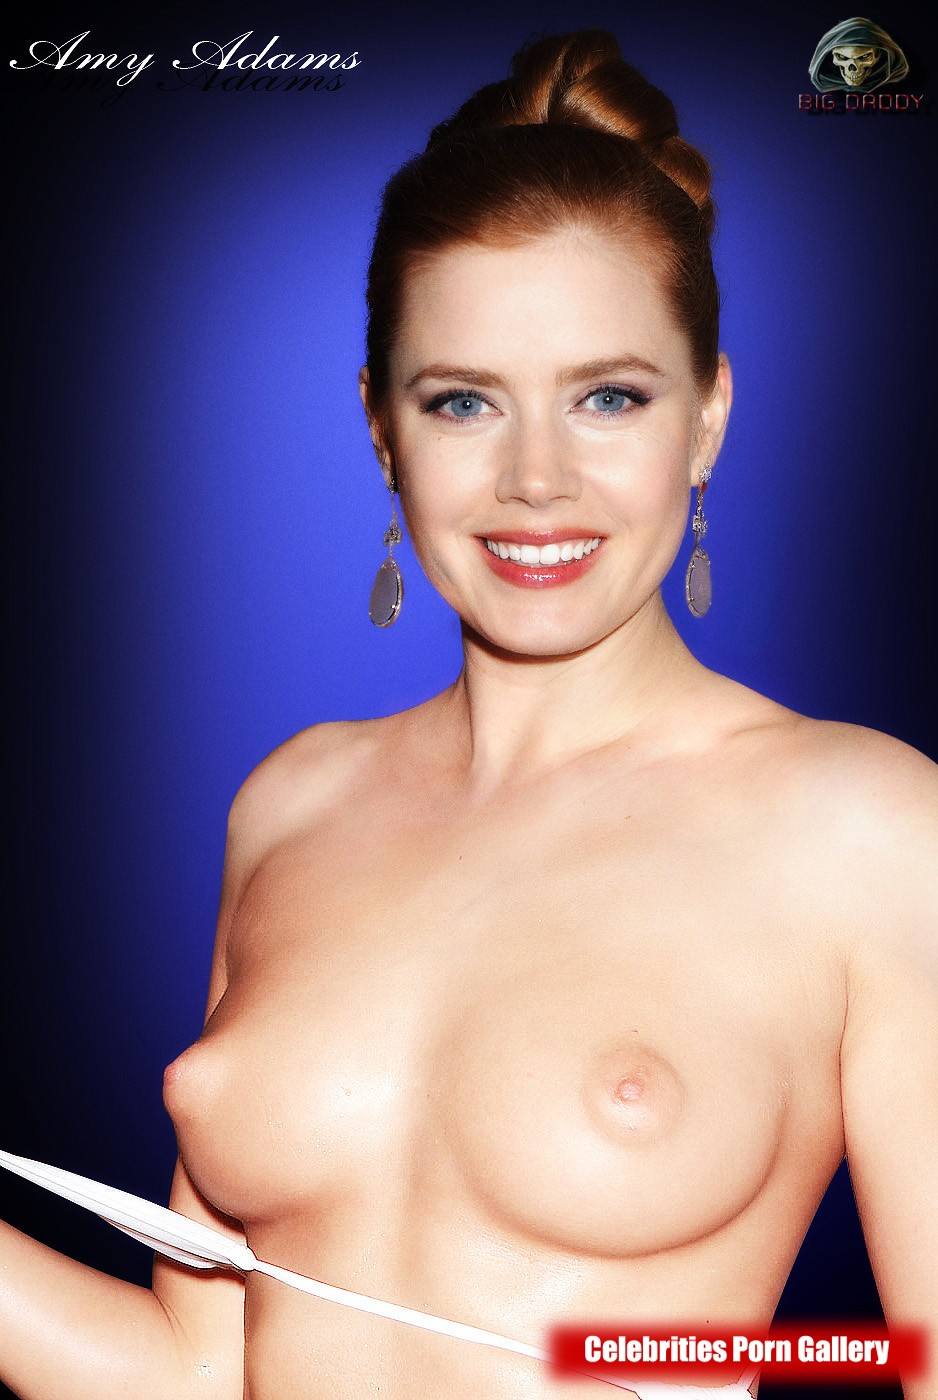 Amy Adams Nude Scenes